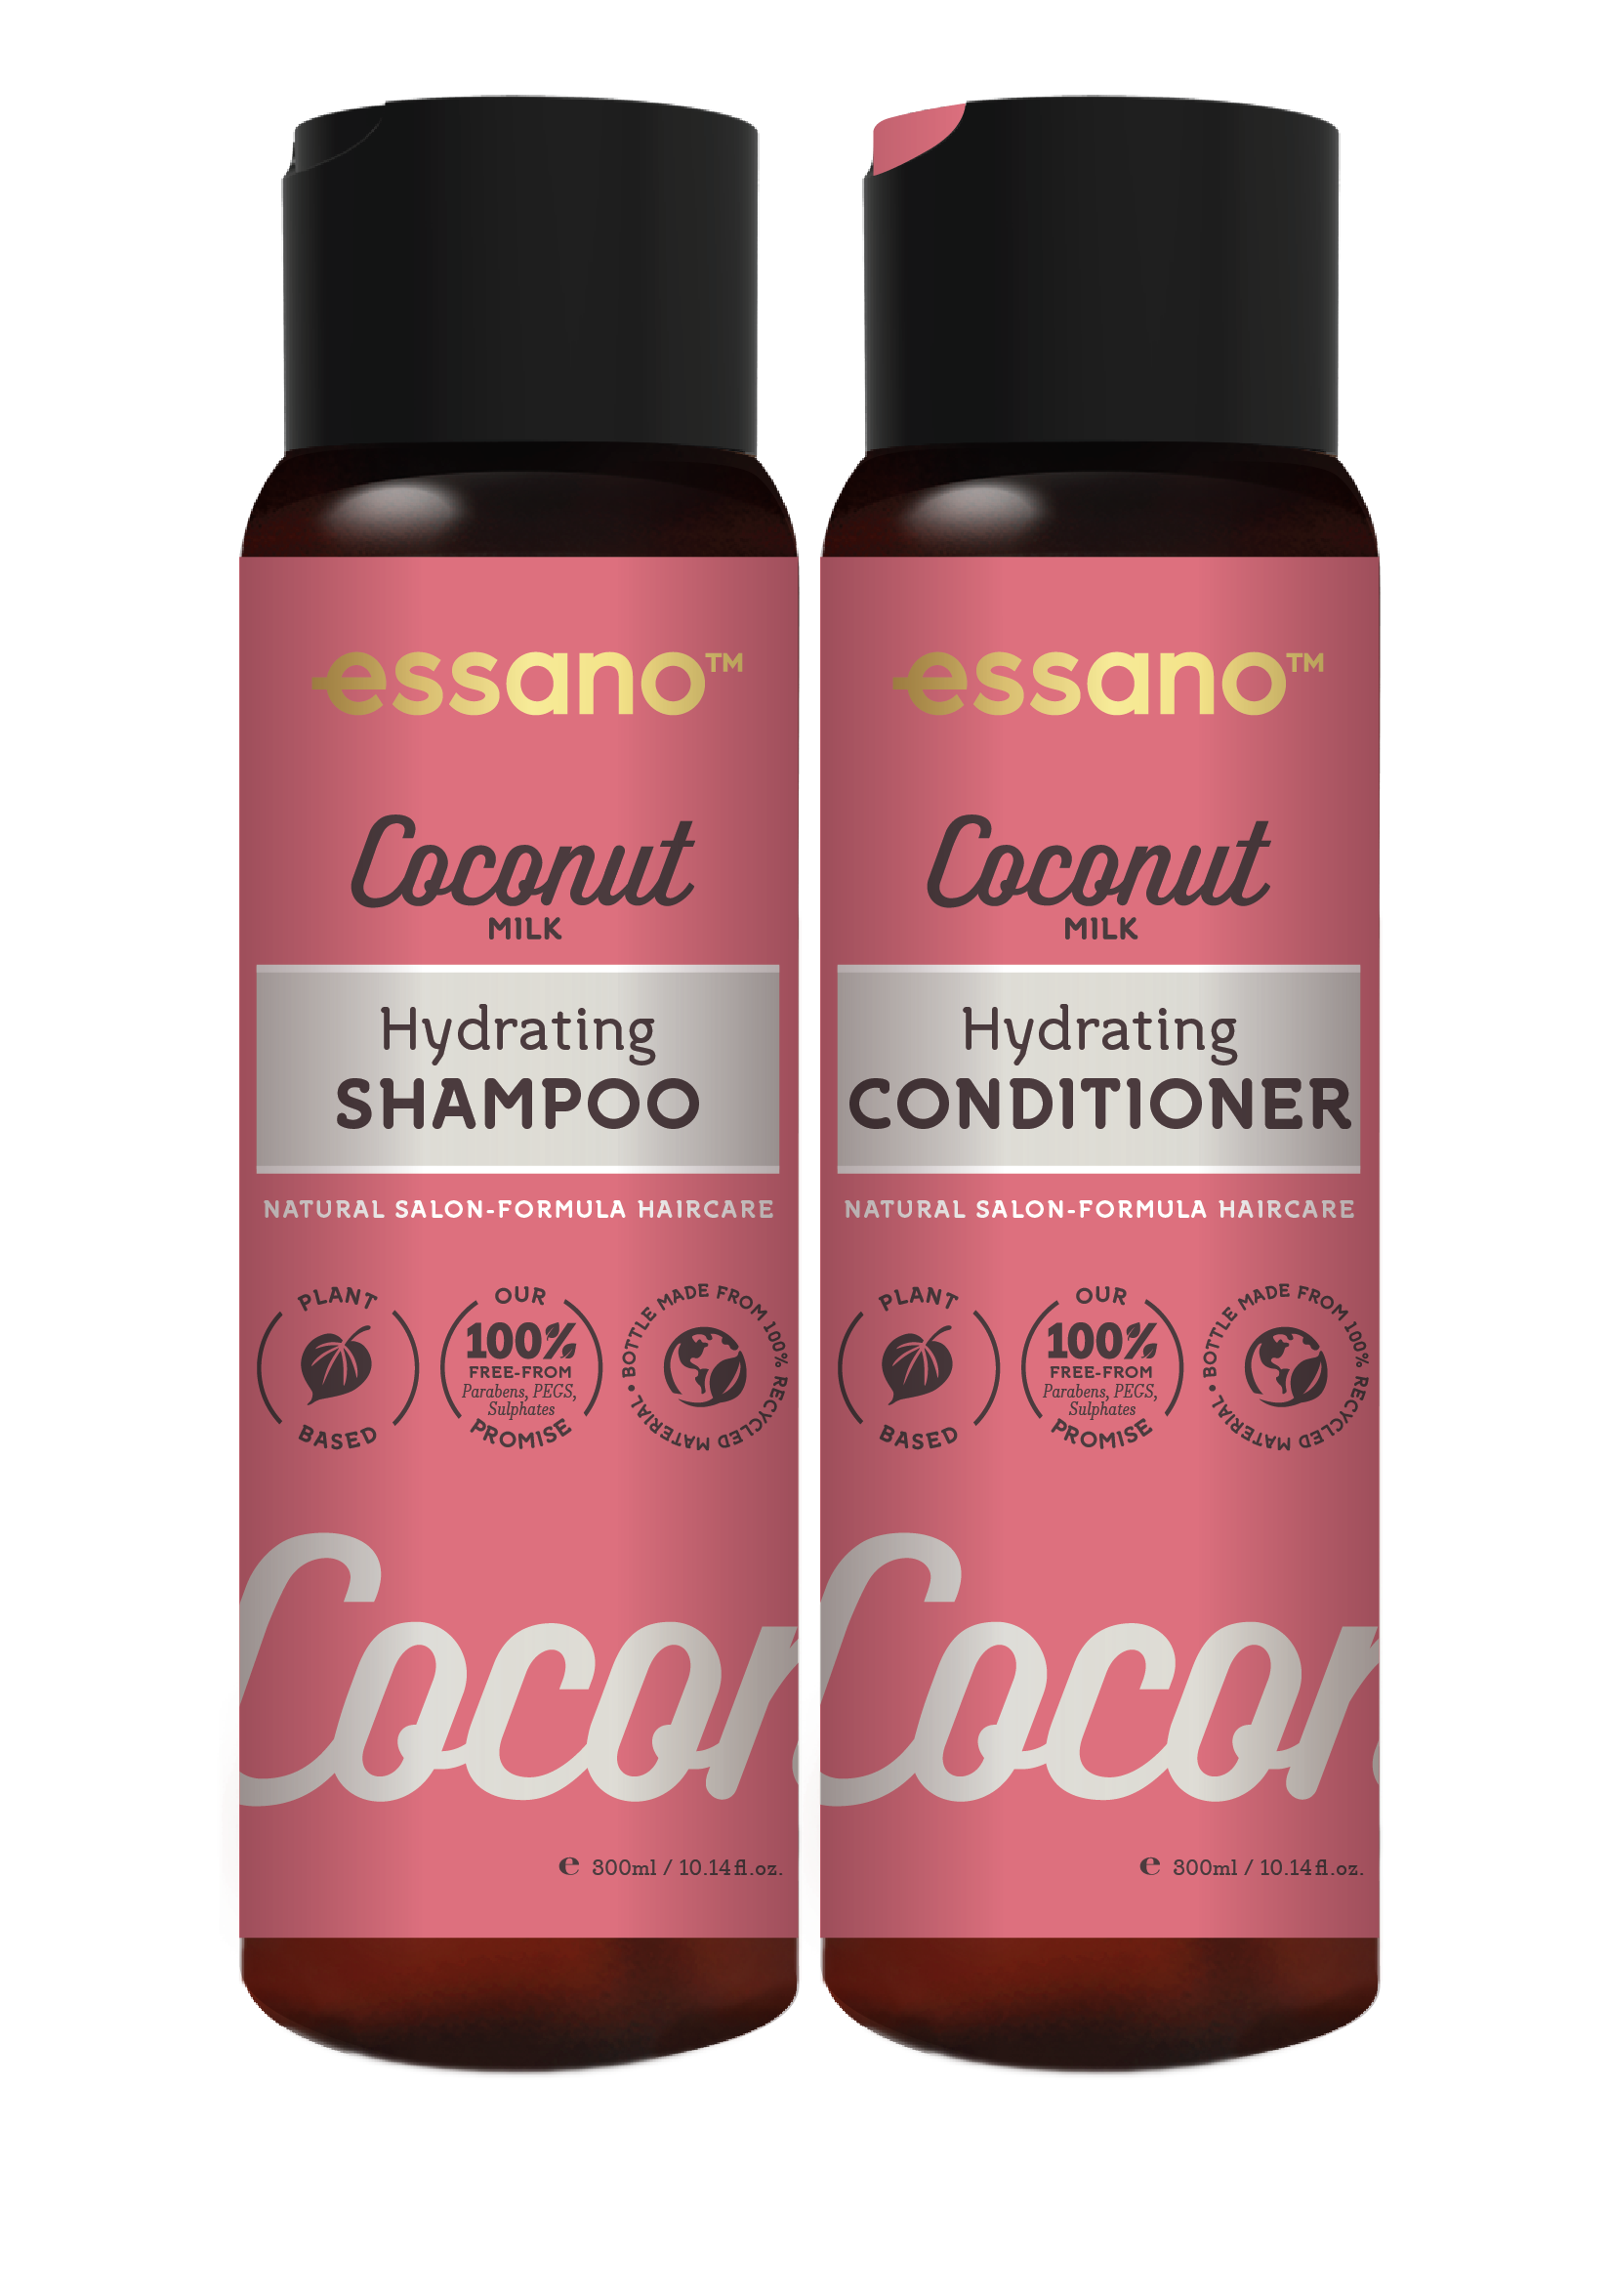 Essano Coconut Hydrating Shampoo and Conditioner duo